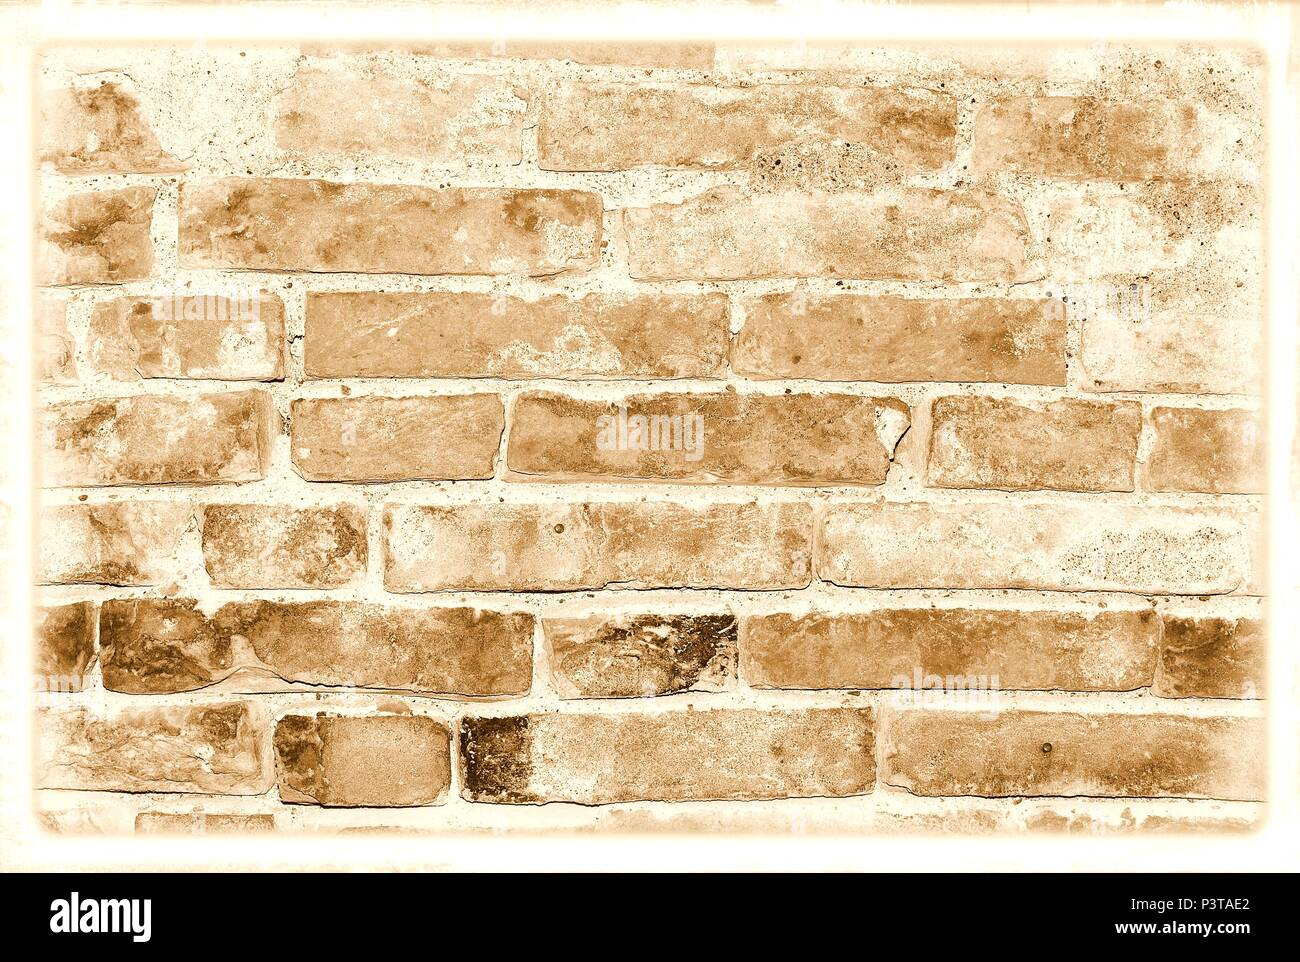 Old damaged brick wall in sepia tones for texture or background. Stock Photo